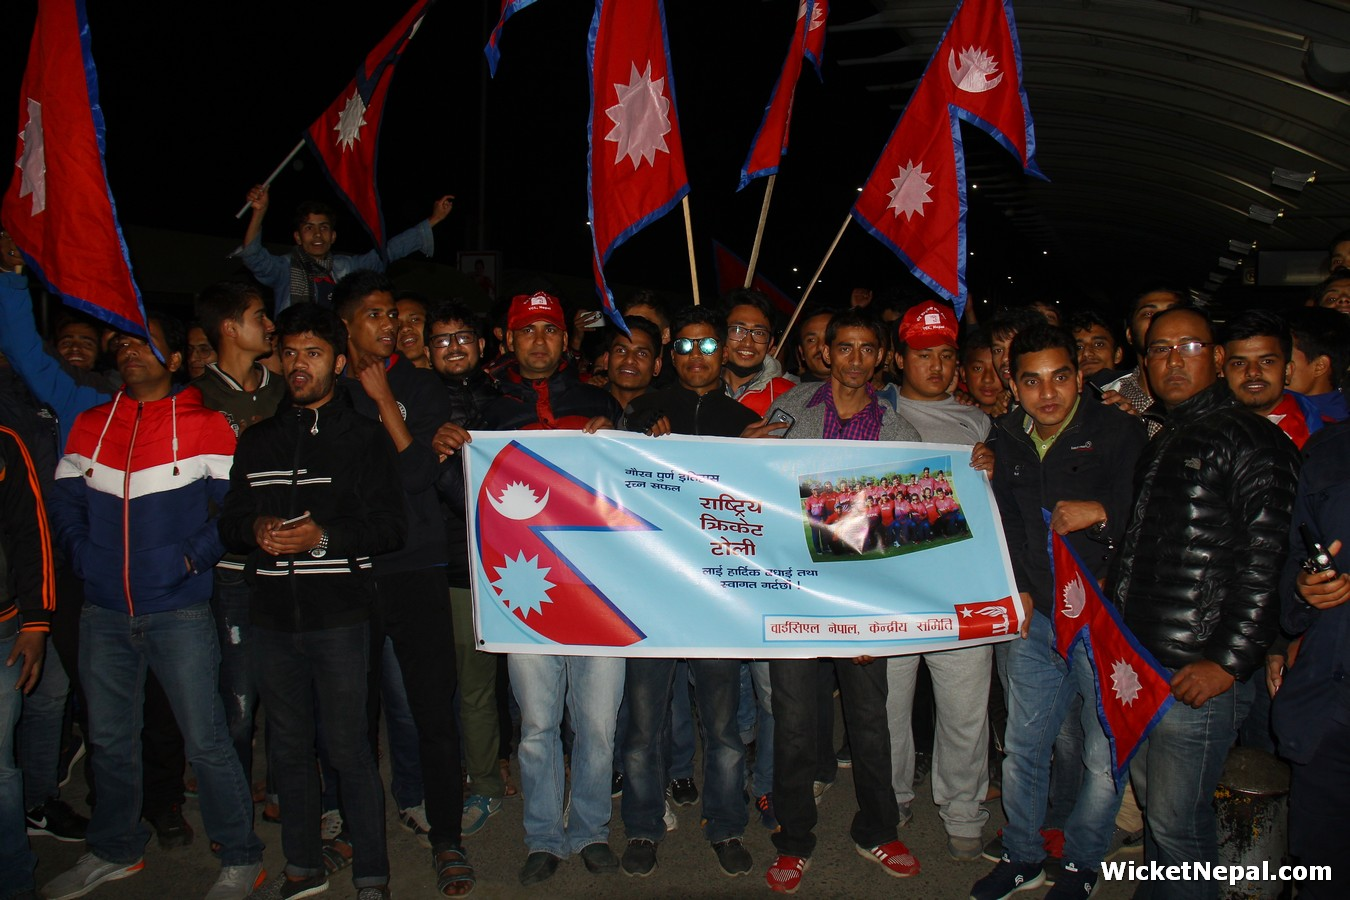 Nepal Cricket Team Fans